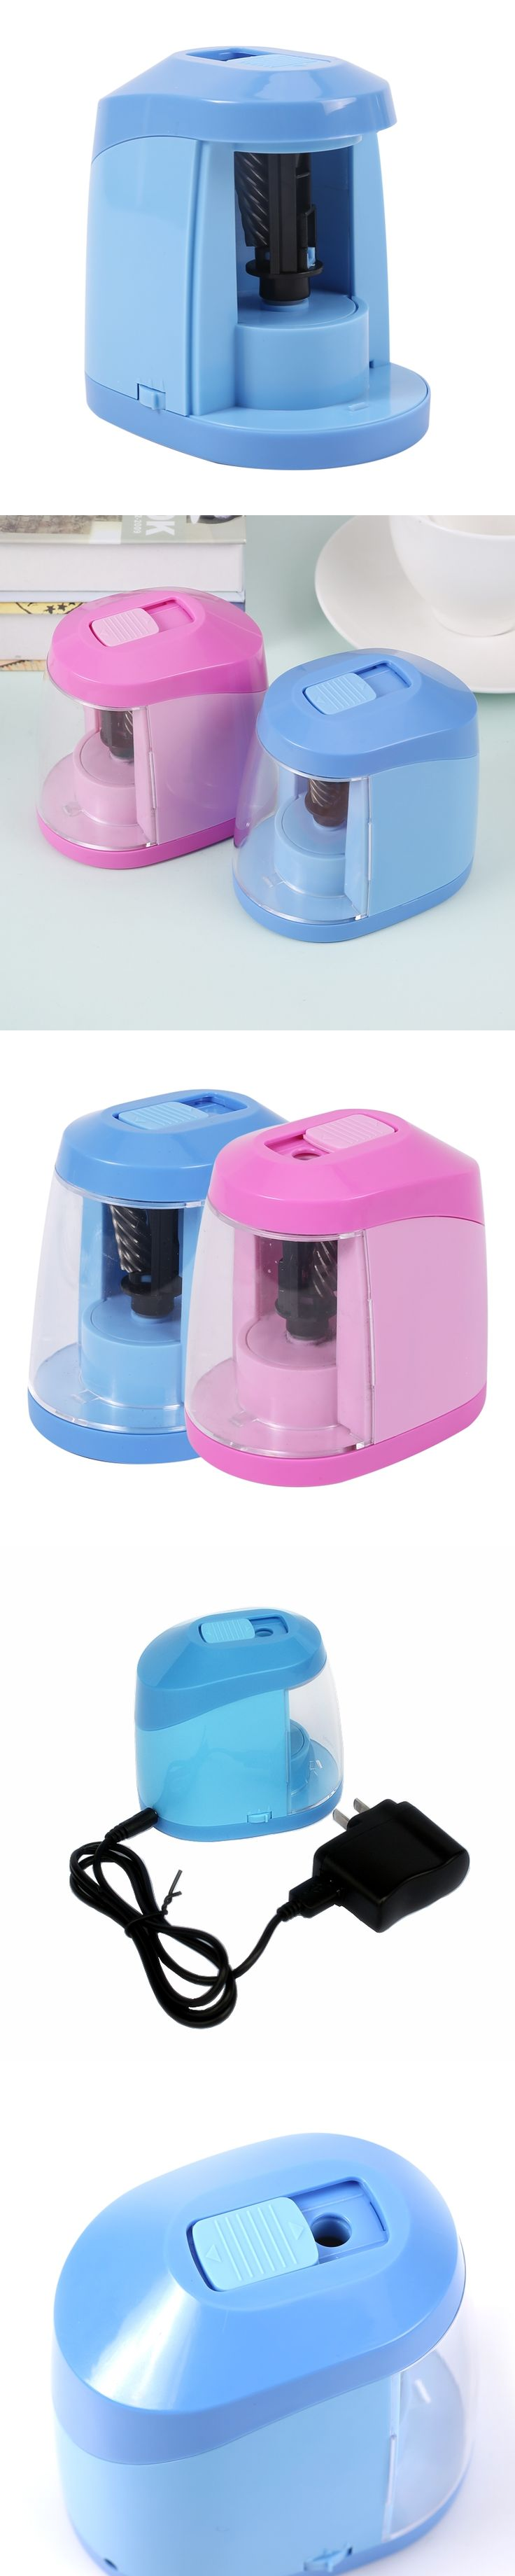 2017 new electric pencil sharpener USB power or AA batteries Automatic Pencil Sharpener 95605